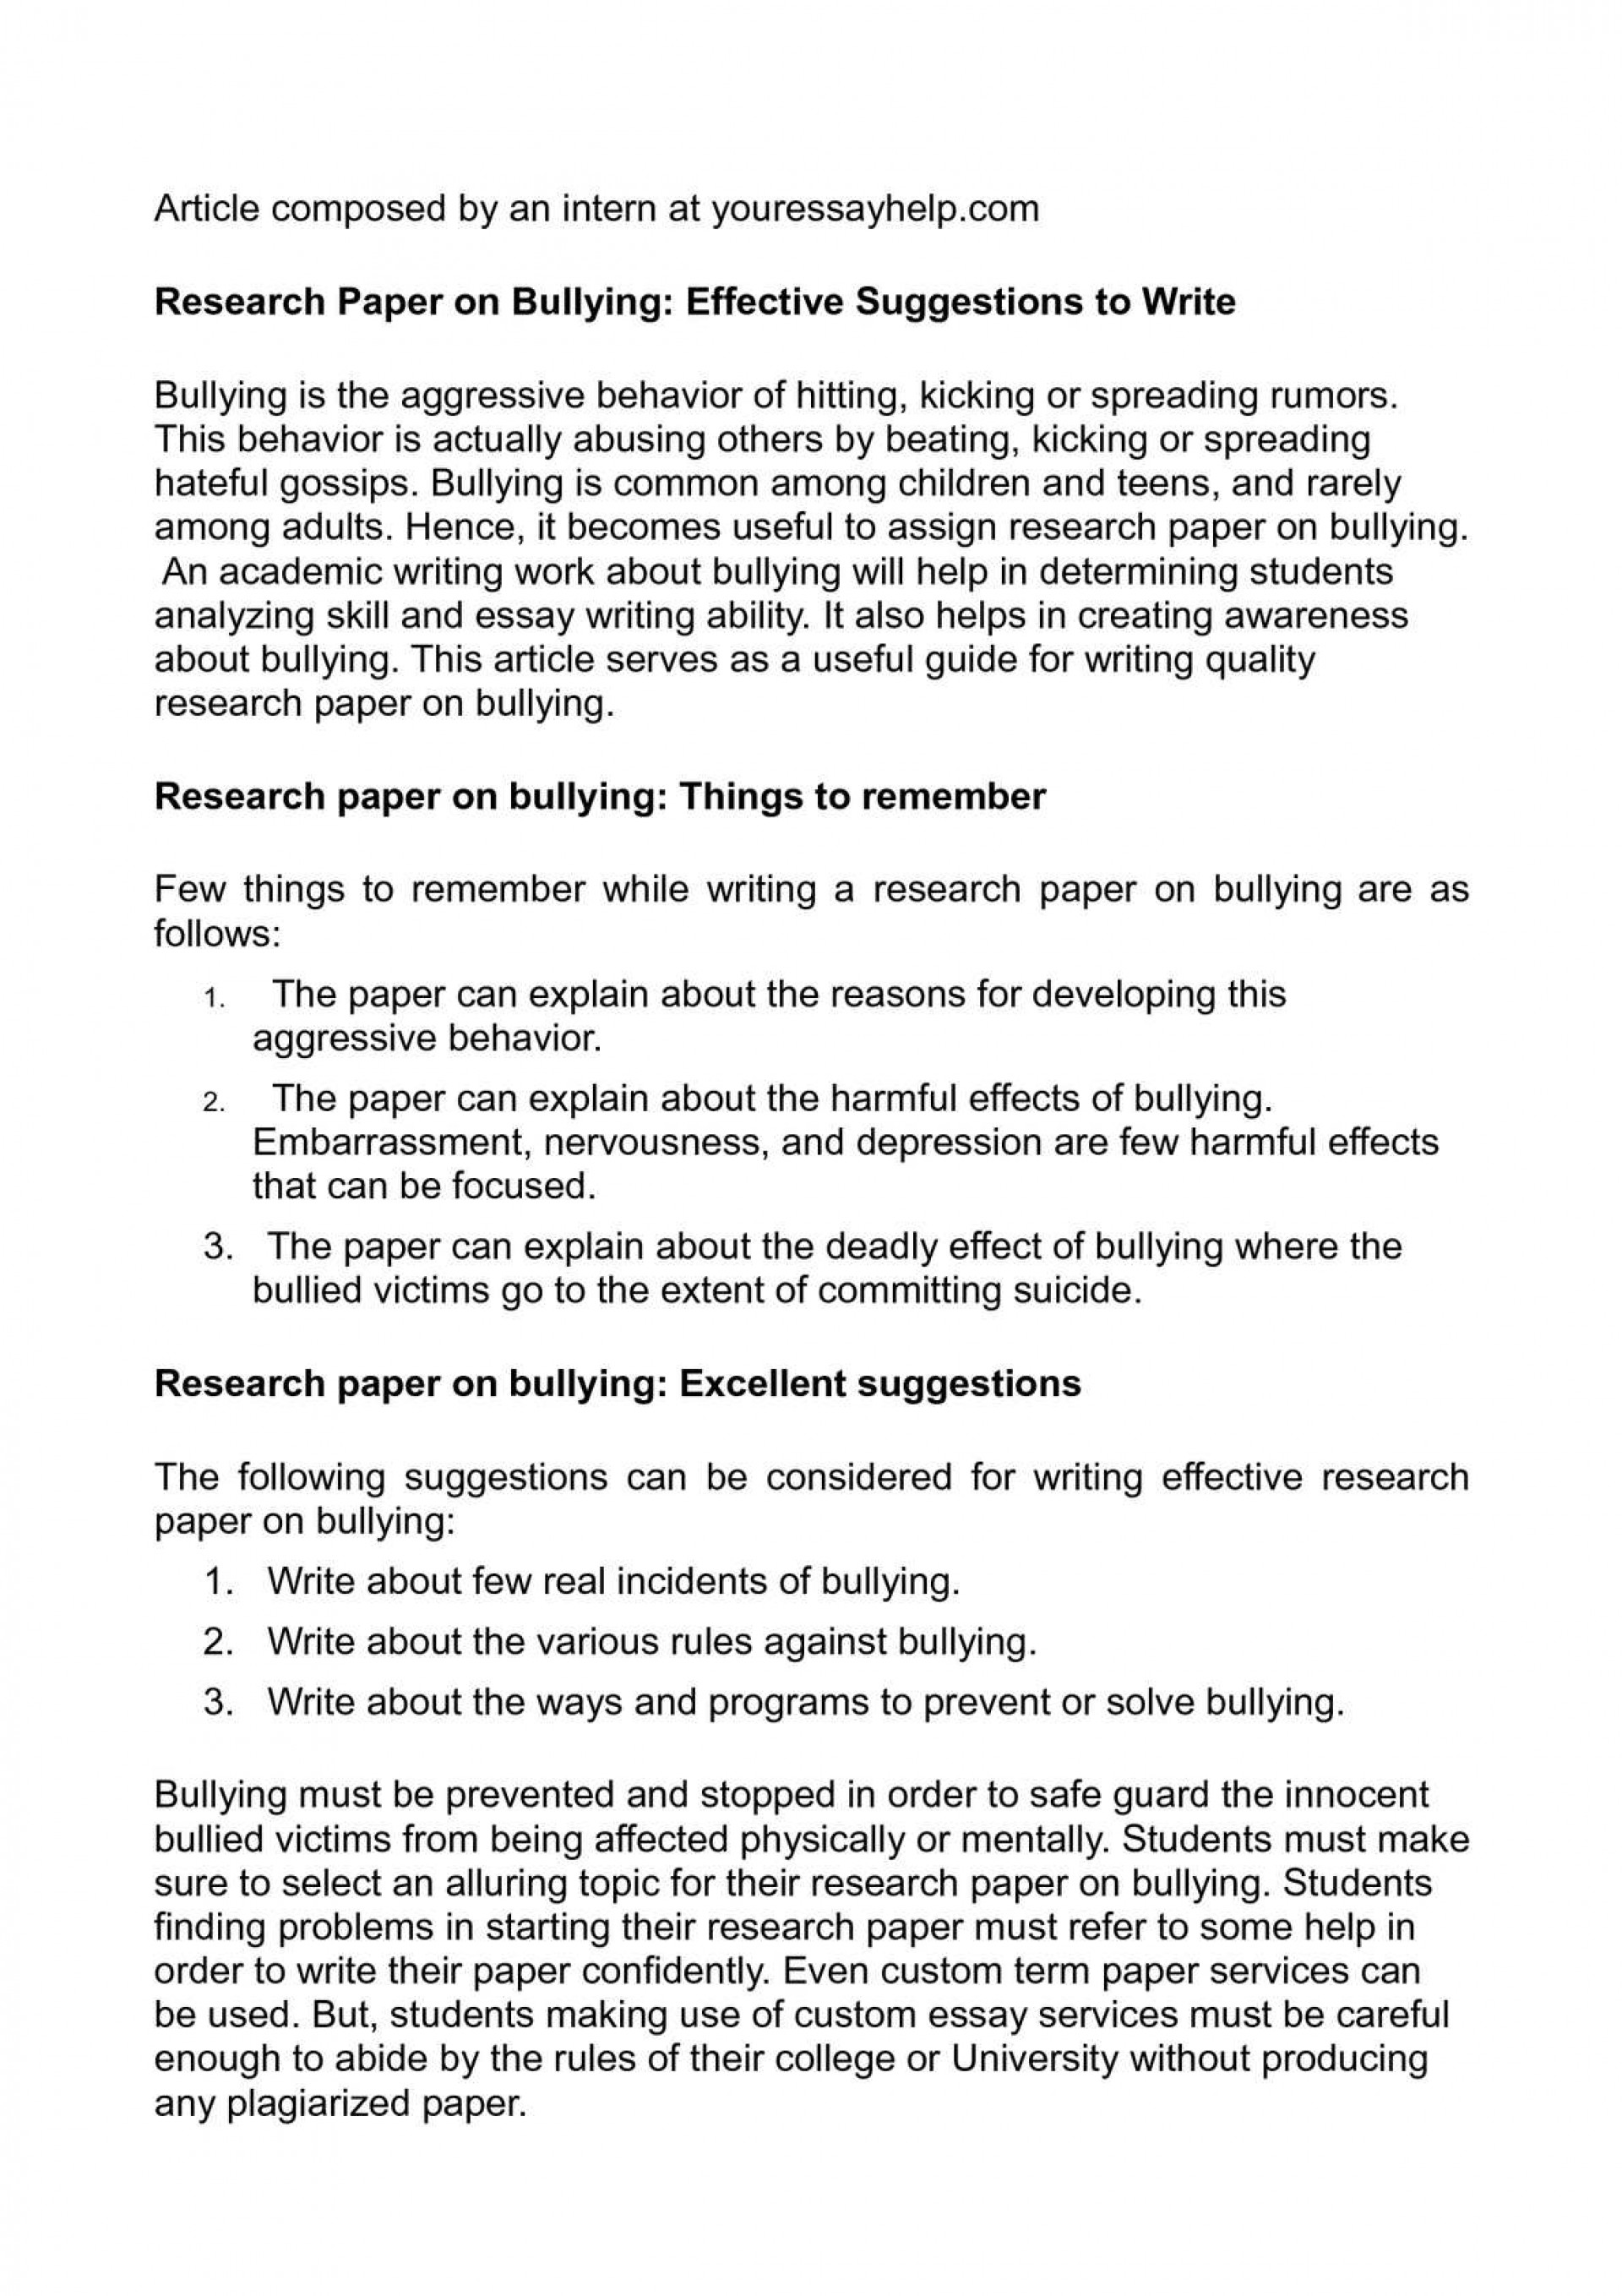 002 Researchs About Bullying P1 Stunning Research Papers In The Philippines Pdf Paper School Quantitative 1920